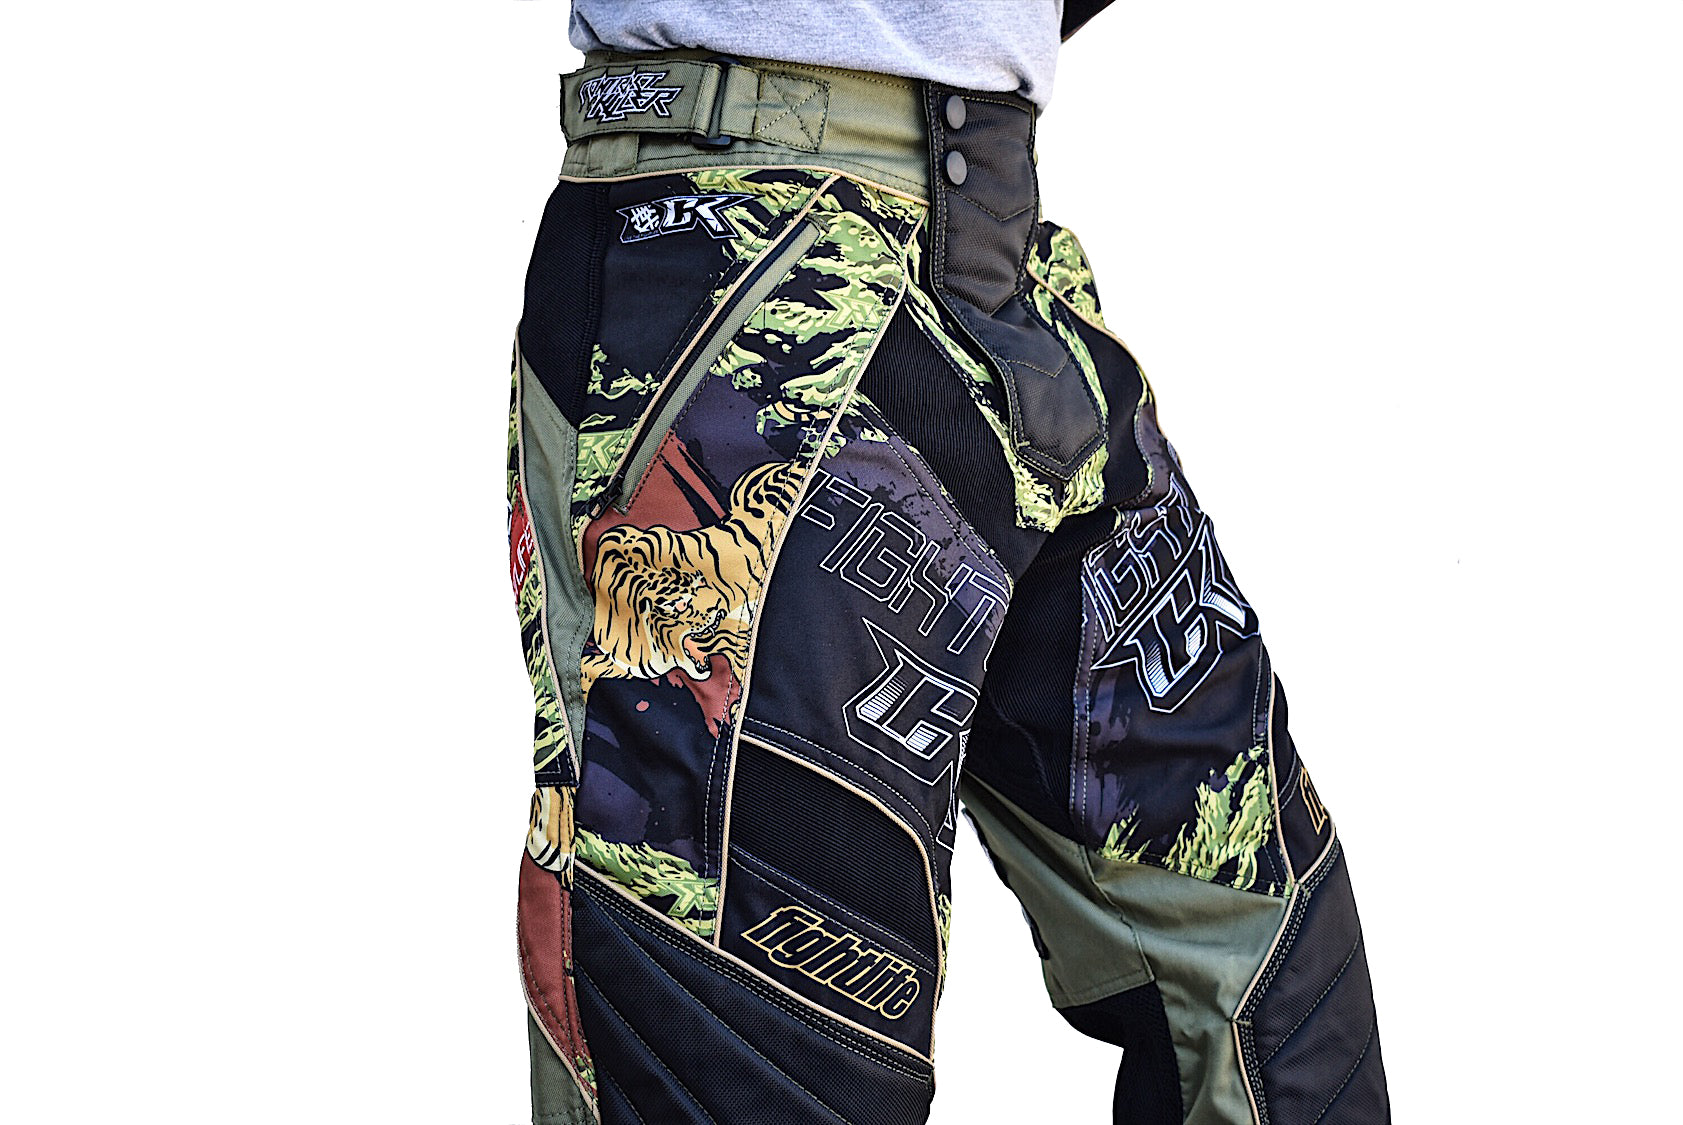 Contract Killer Tiger Stripe Paintball Pants - Olive - CK Fight Life 008a0c40712